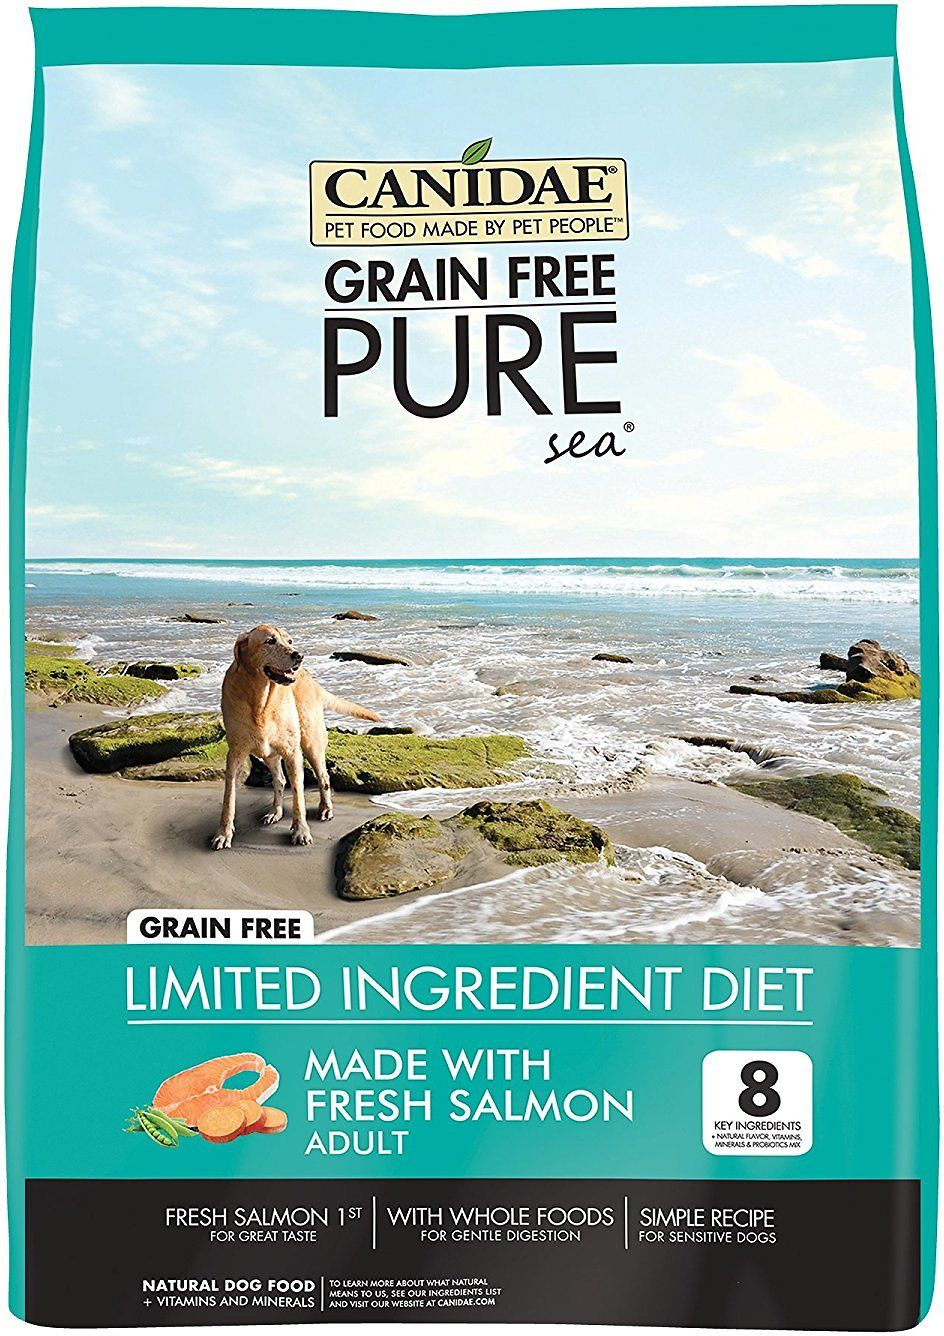 Canidae grainfree pure limited ingredient salmon sweet